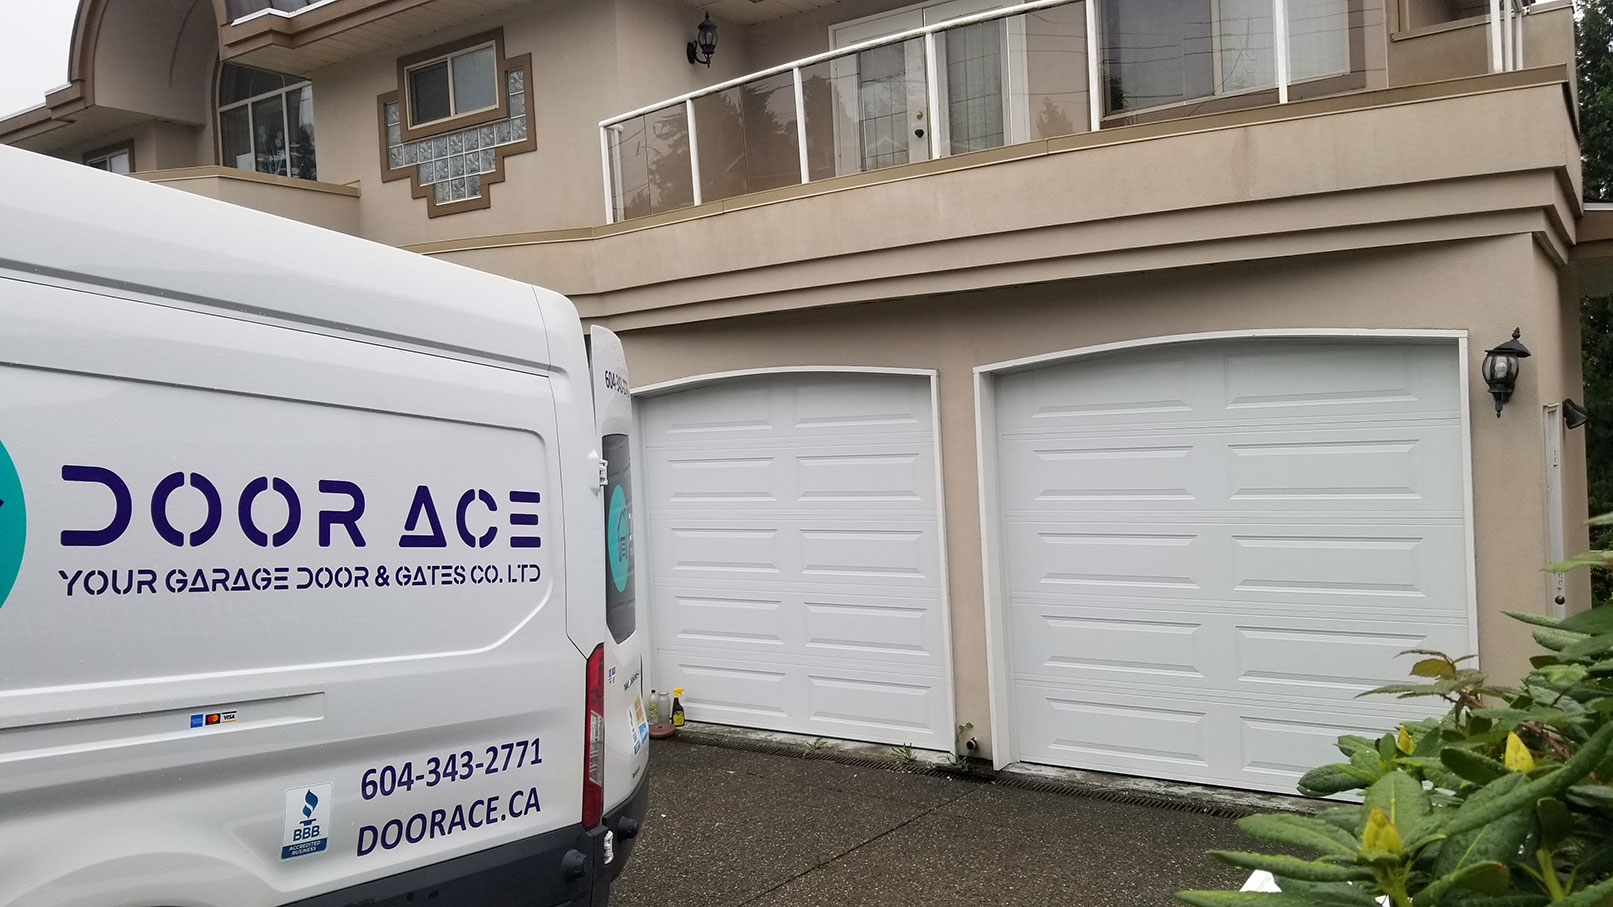 2. Garage Door Repair Home after